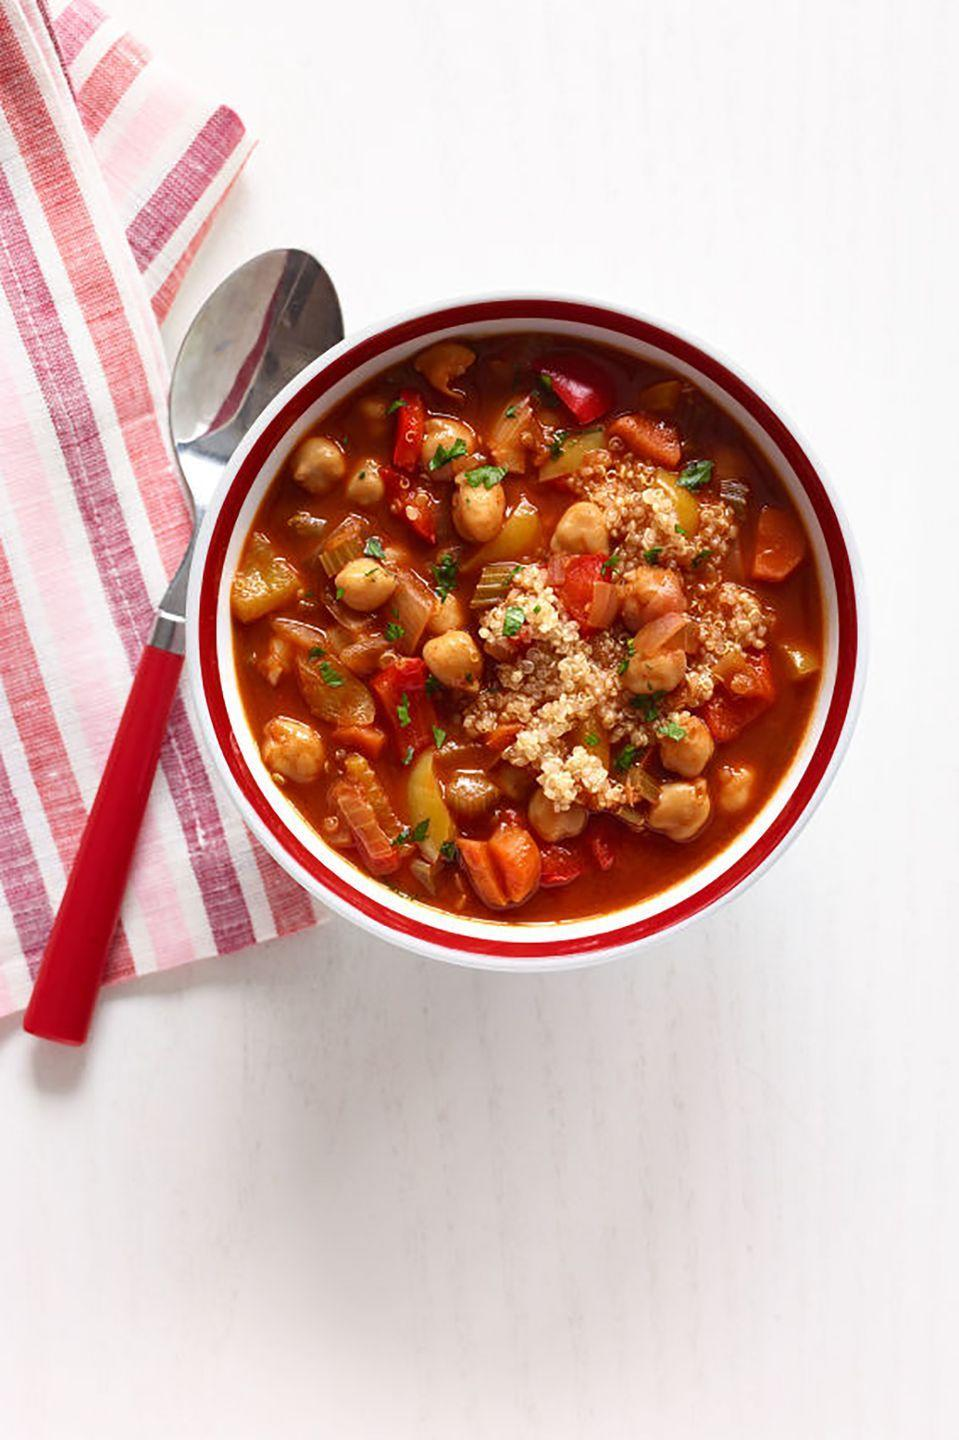 """<p>Nutty-flavored, protein-filled quinoa cooks together with seasoned vegetables for a tasty dinnertime soup.</p><p><strong><a href=""""https://www.countryliving.com/food-drinks/recipes/a34596/chickpea-red-pepper-soup-quinoa-recipe-wdy0214/"""" rel=""""nofollow noopener"""" target=""""_blank"""" data-ylk=""""slk:Get the recipe"""" class=""""link rapid-noclick-resp"""">Get the recipe</a>.</strong></p>"""